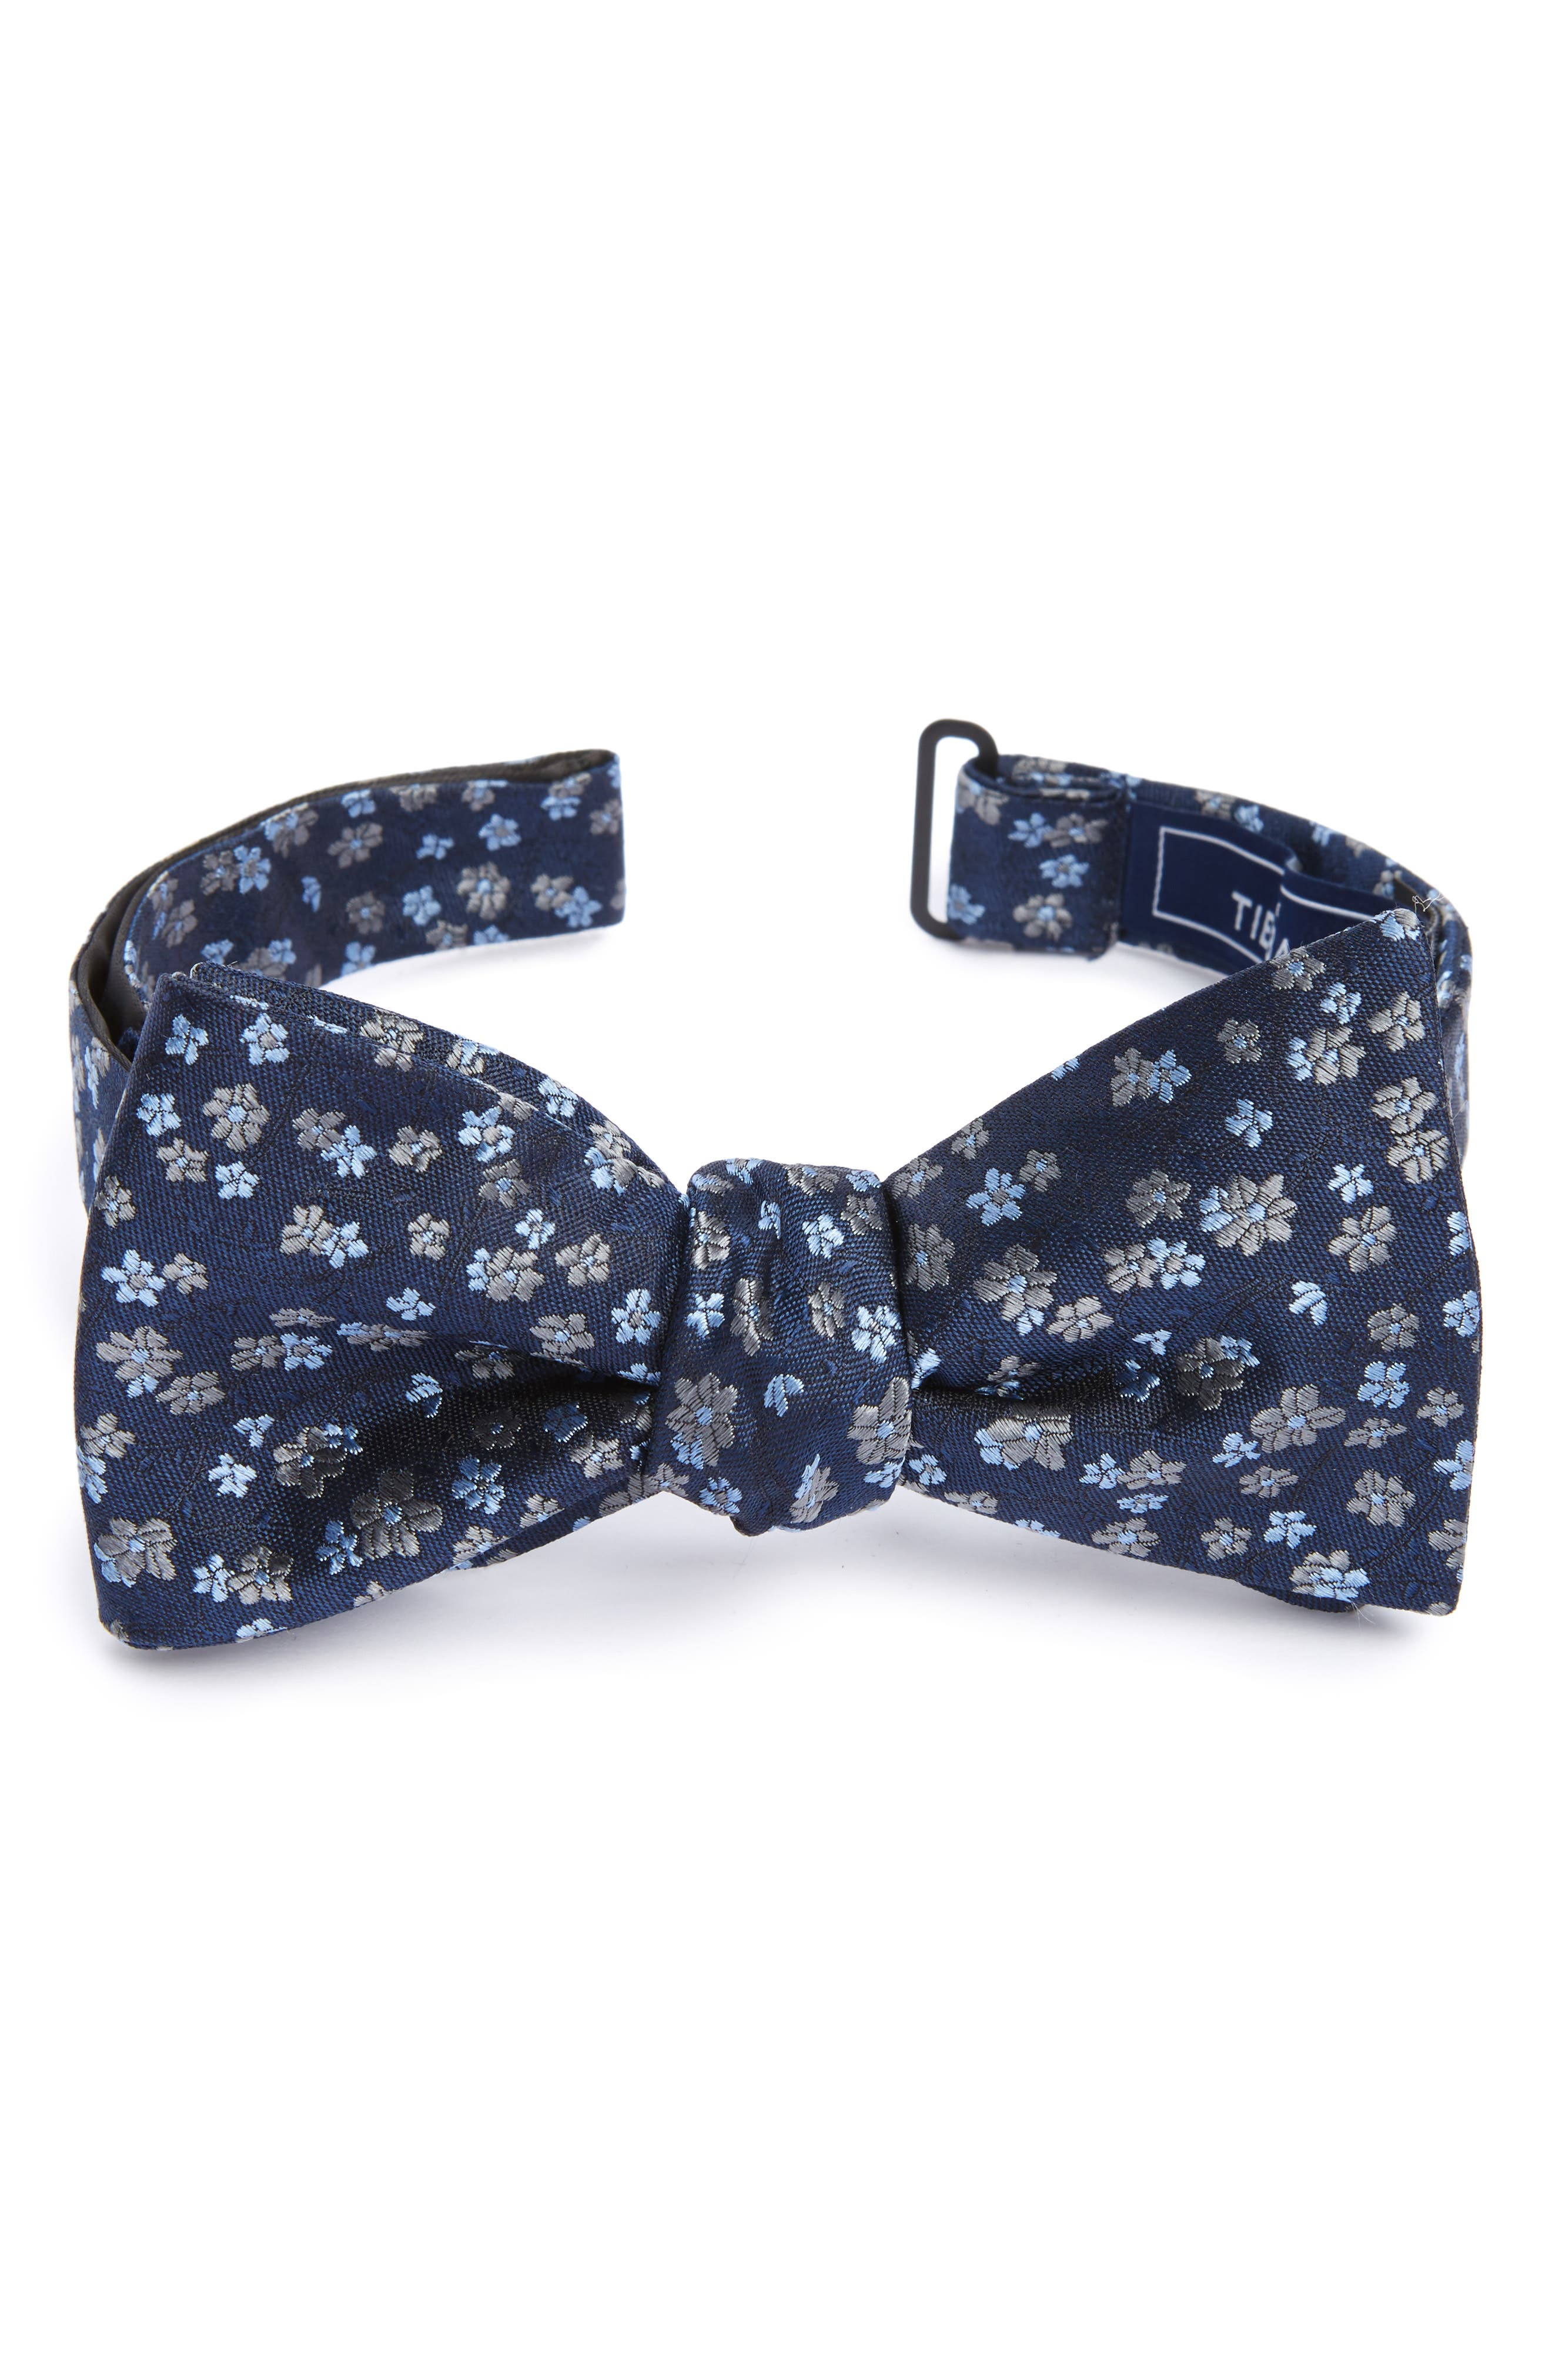 Alternate Image 1 Selected - The Tie Bar Freefall Floral Silk Bow Tie